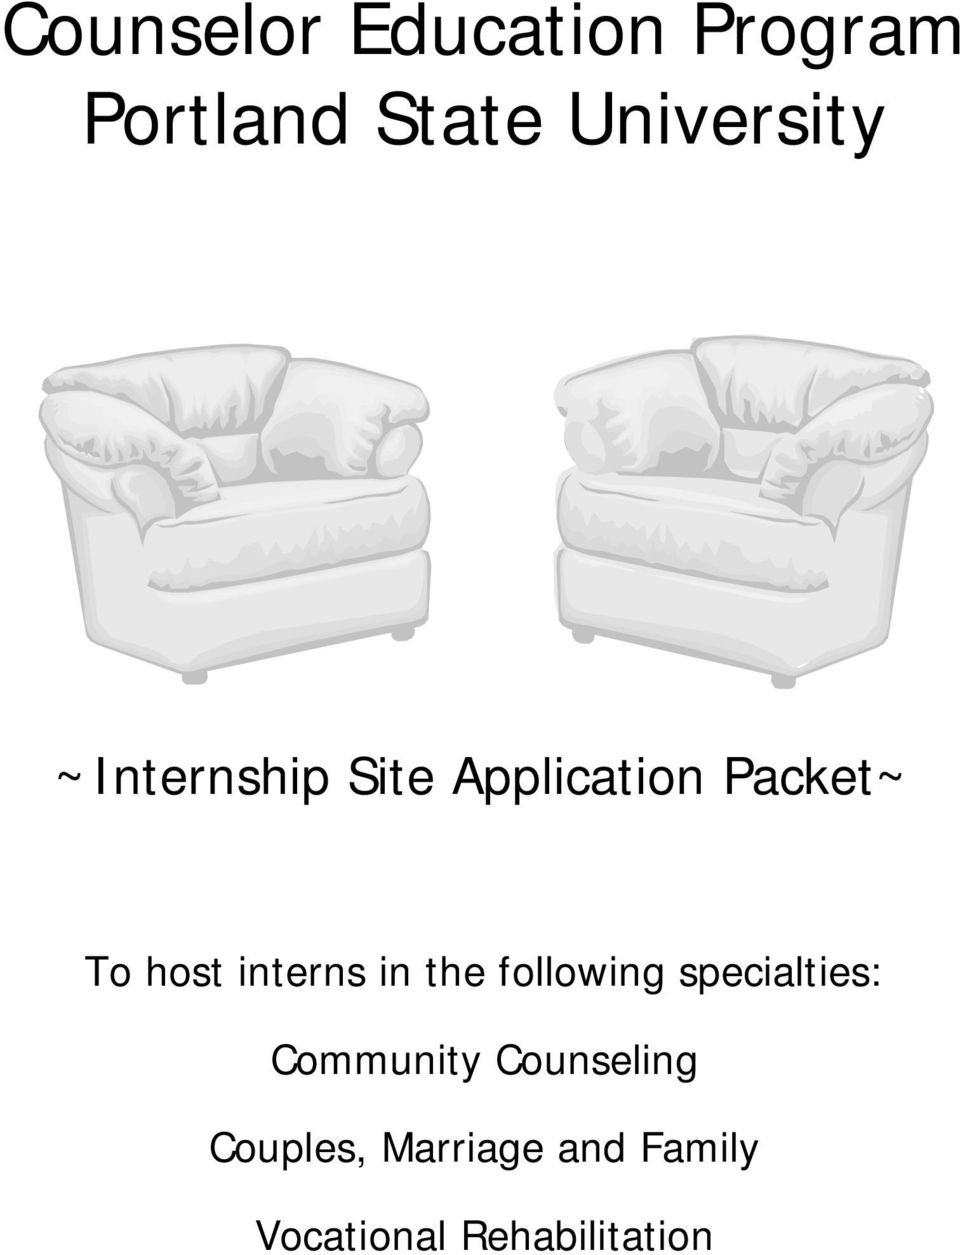 host interns in the following specialties: Community